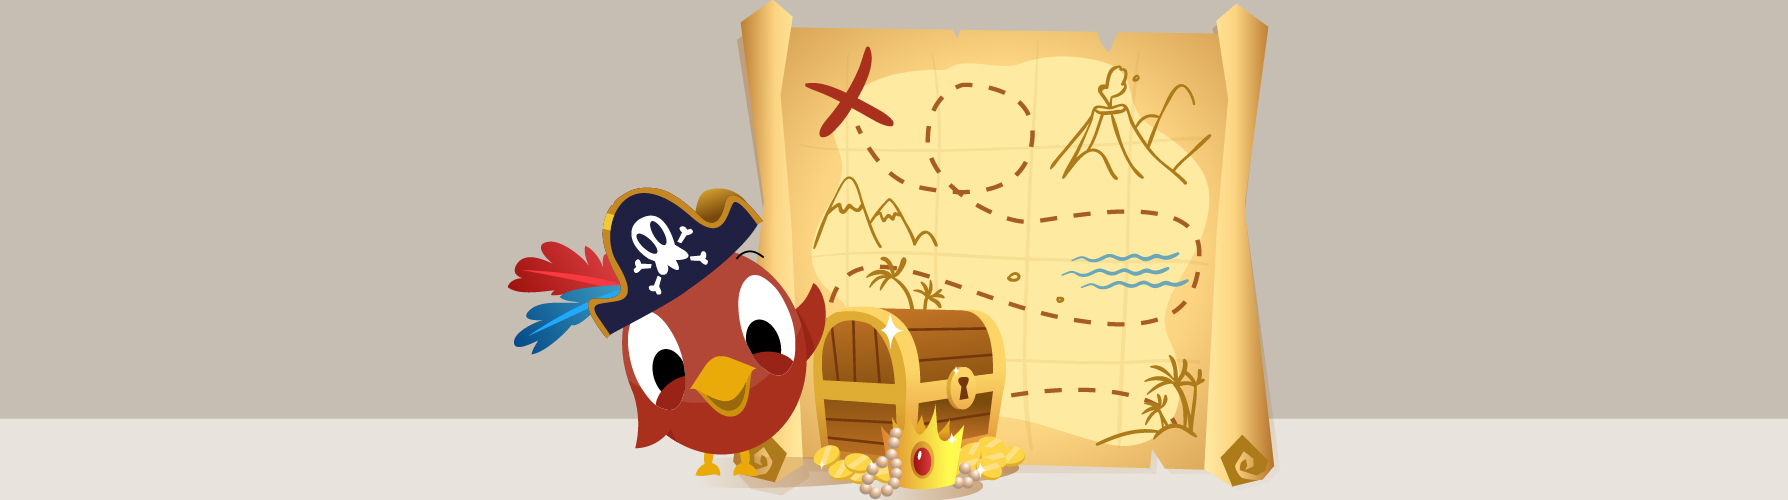 Pirate social media bird pointing to treasure on treasure map